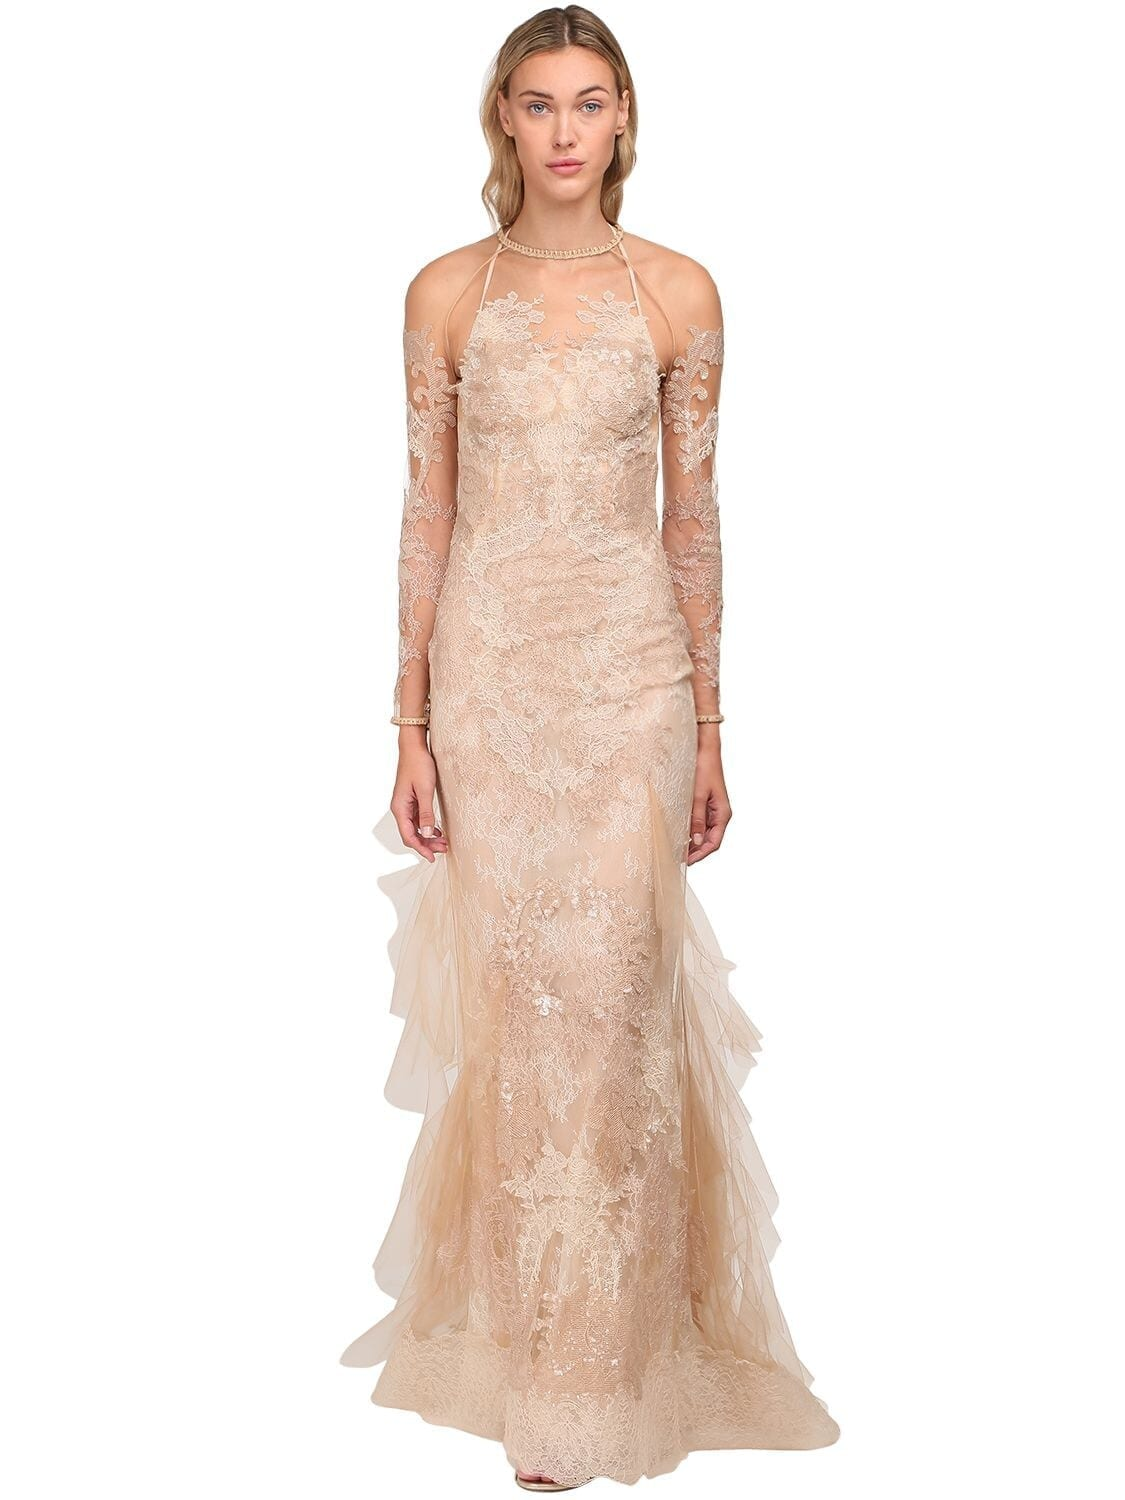 YOLANCRIS Sequined Sheer Organza & Lace Long Dress